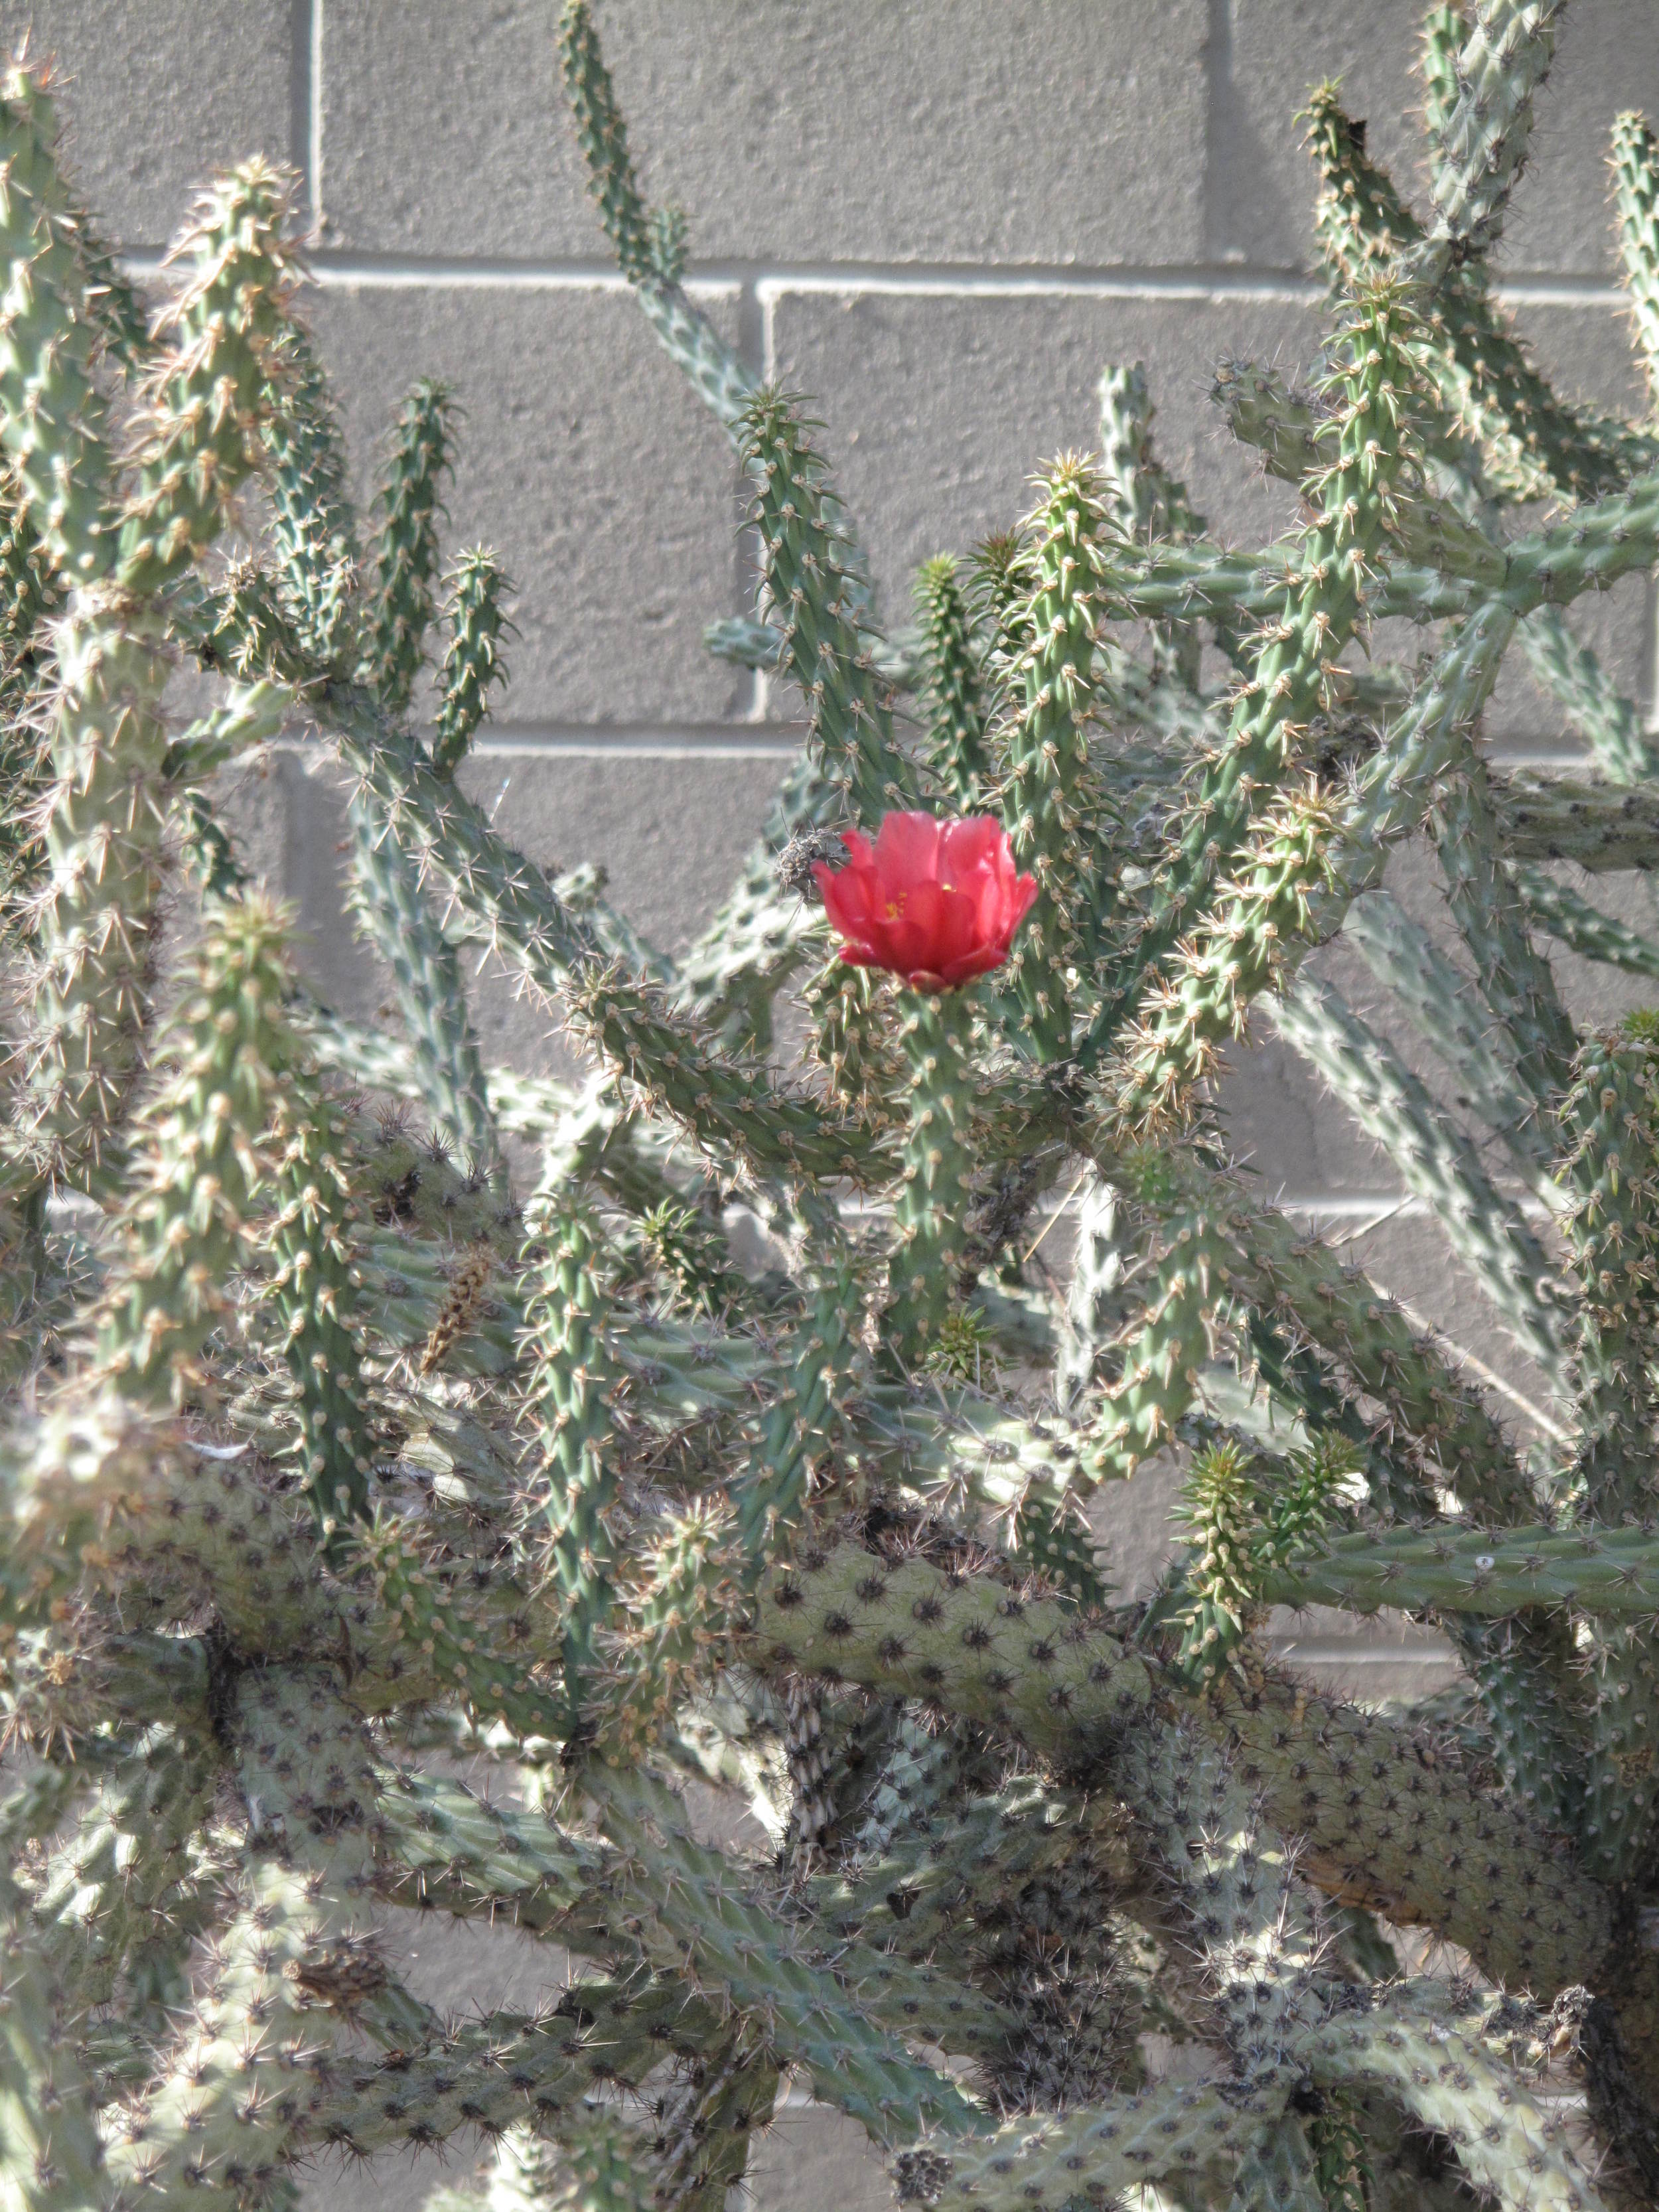 Cactus of type cylindrical arms